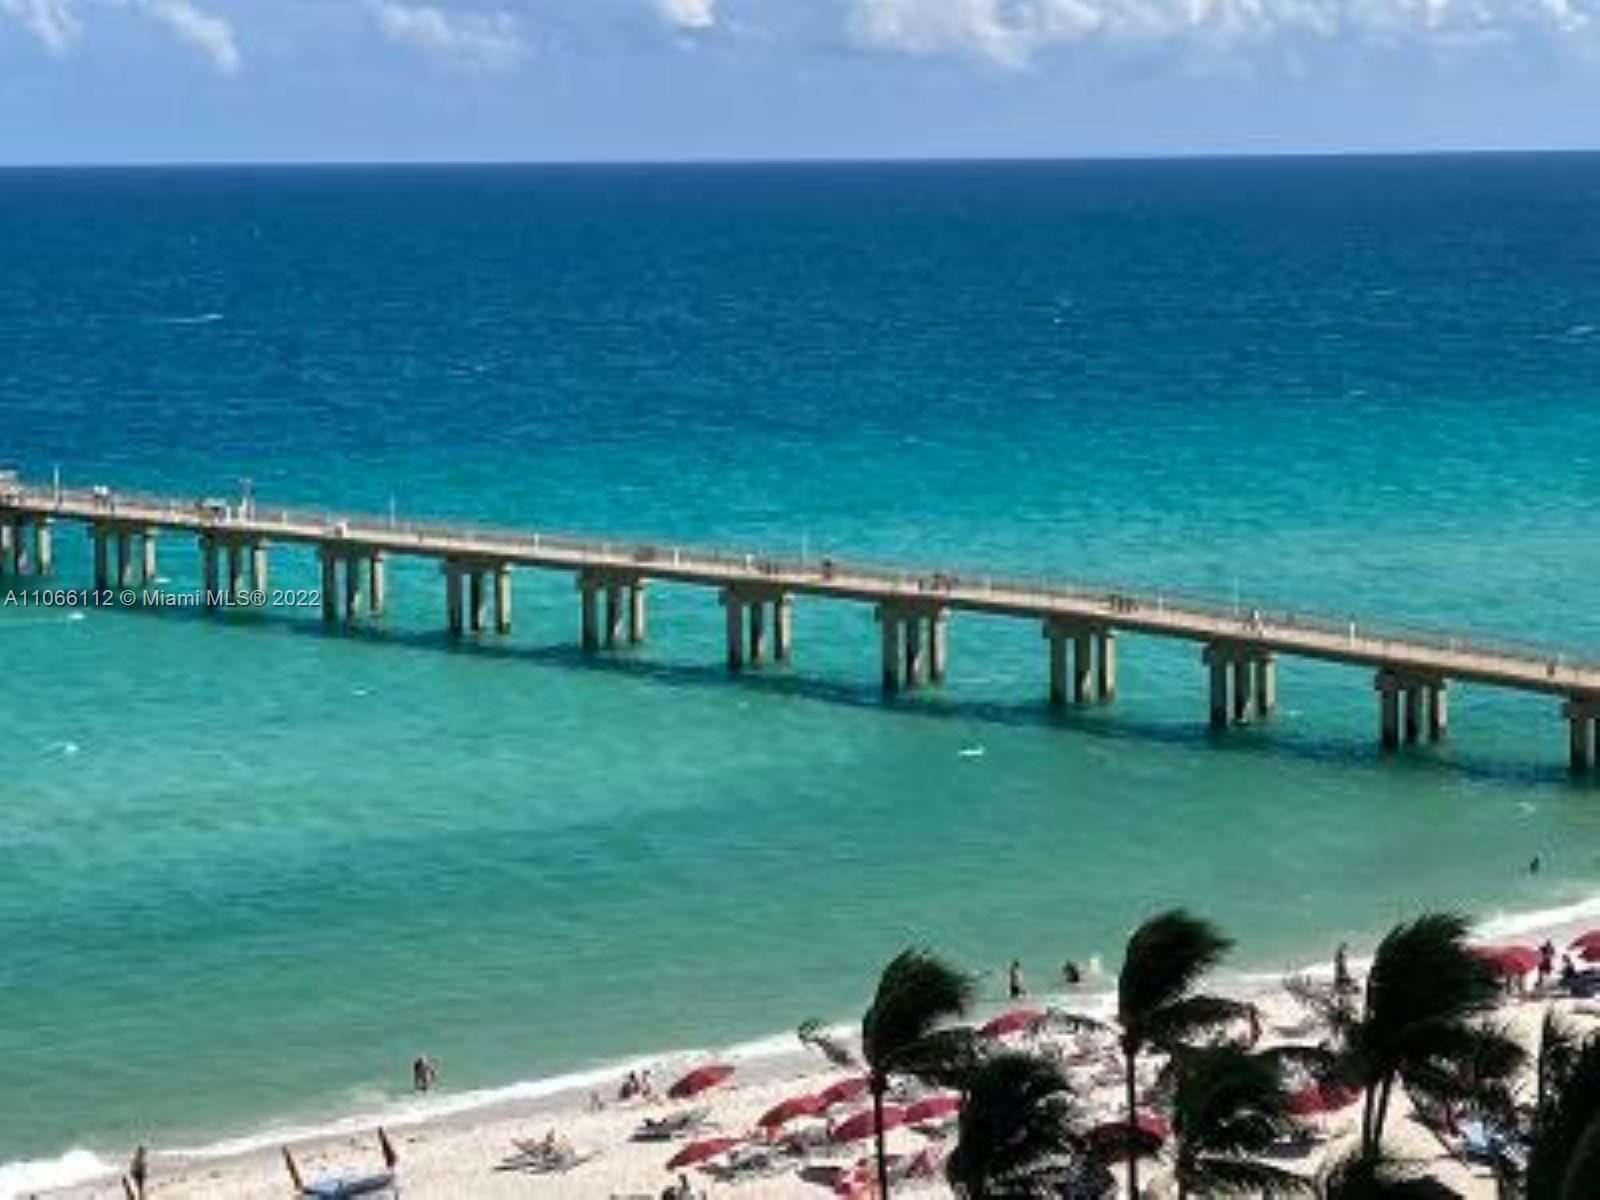 16711 Collins Ave #1005, Sunny Isles, FL 33160 - #: A11066112